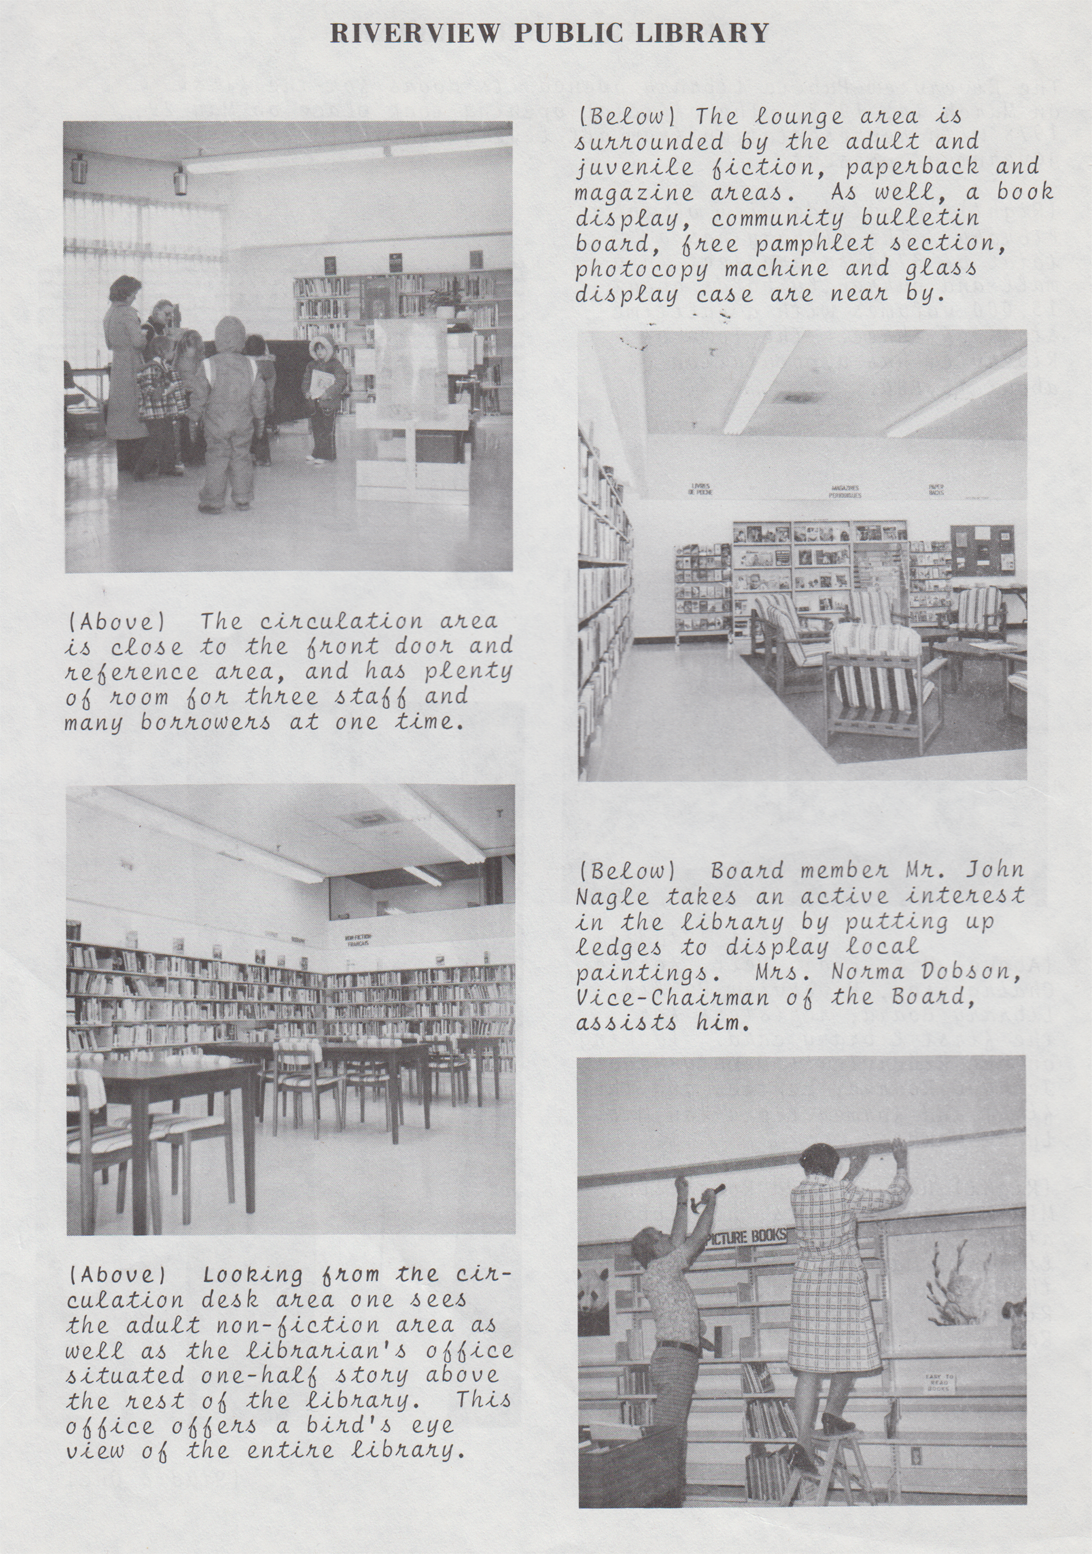 1984 6 RiverviewPublicLibrary 1